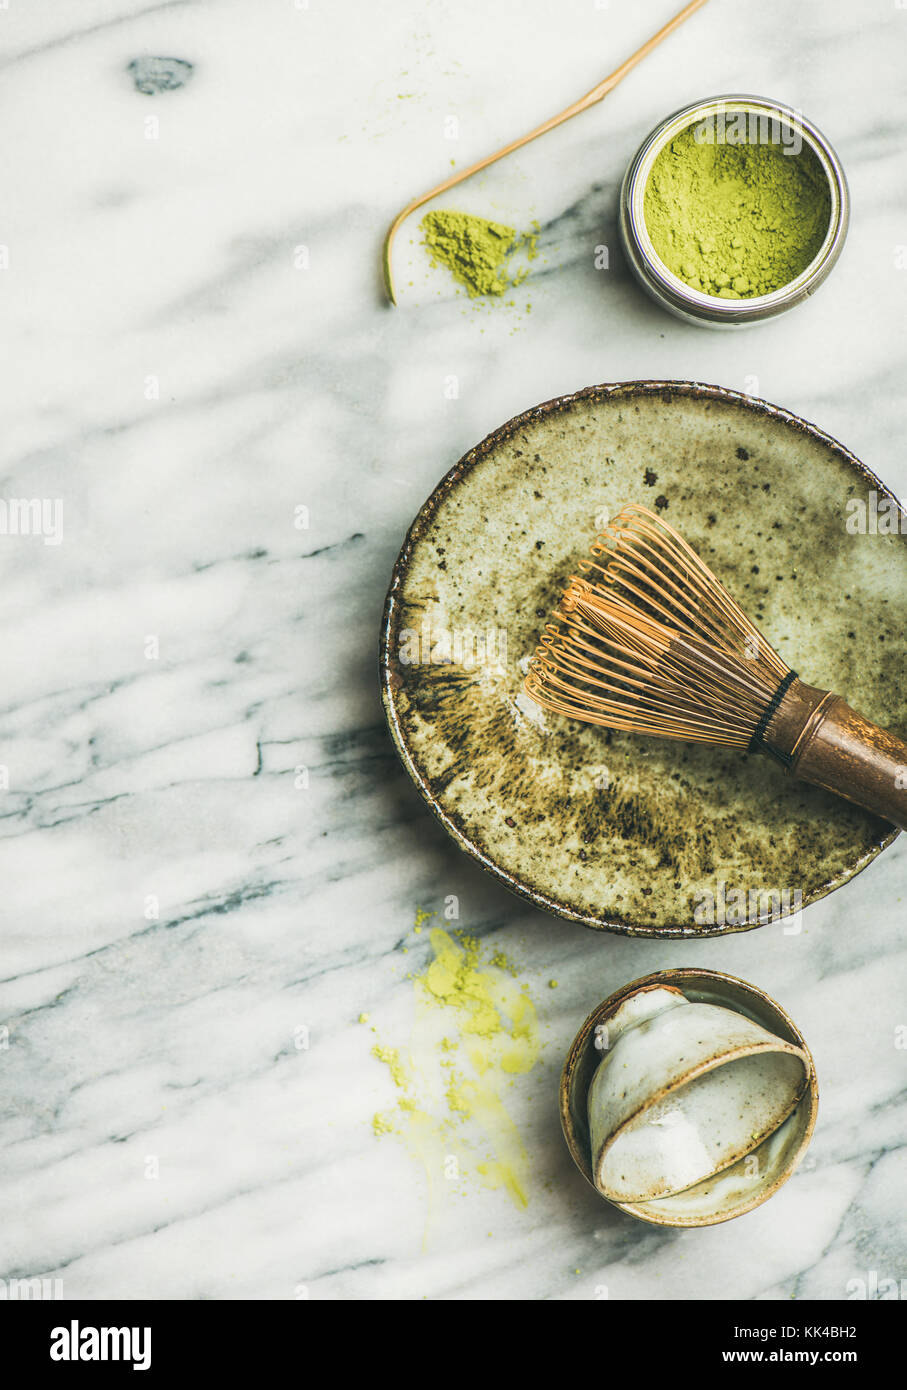 Japanese tools and cups for brewing matcha green tea - Stock Image